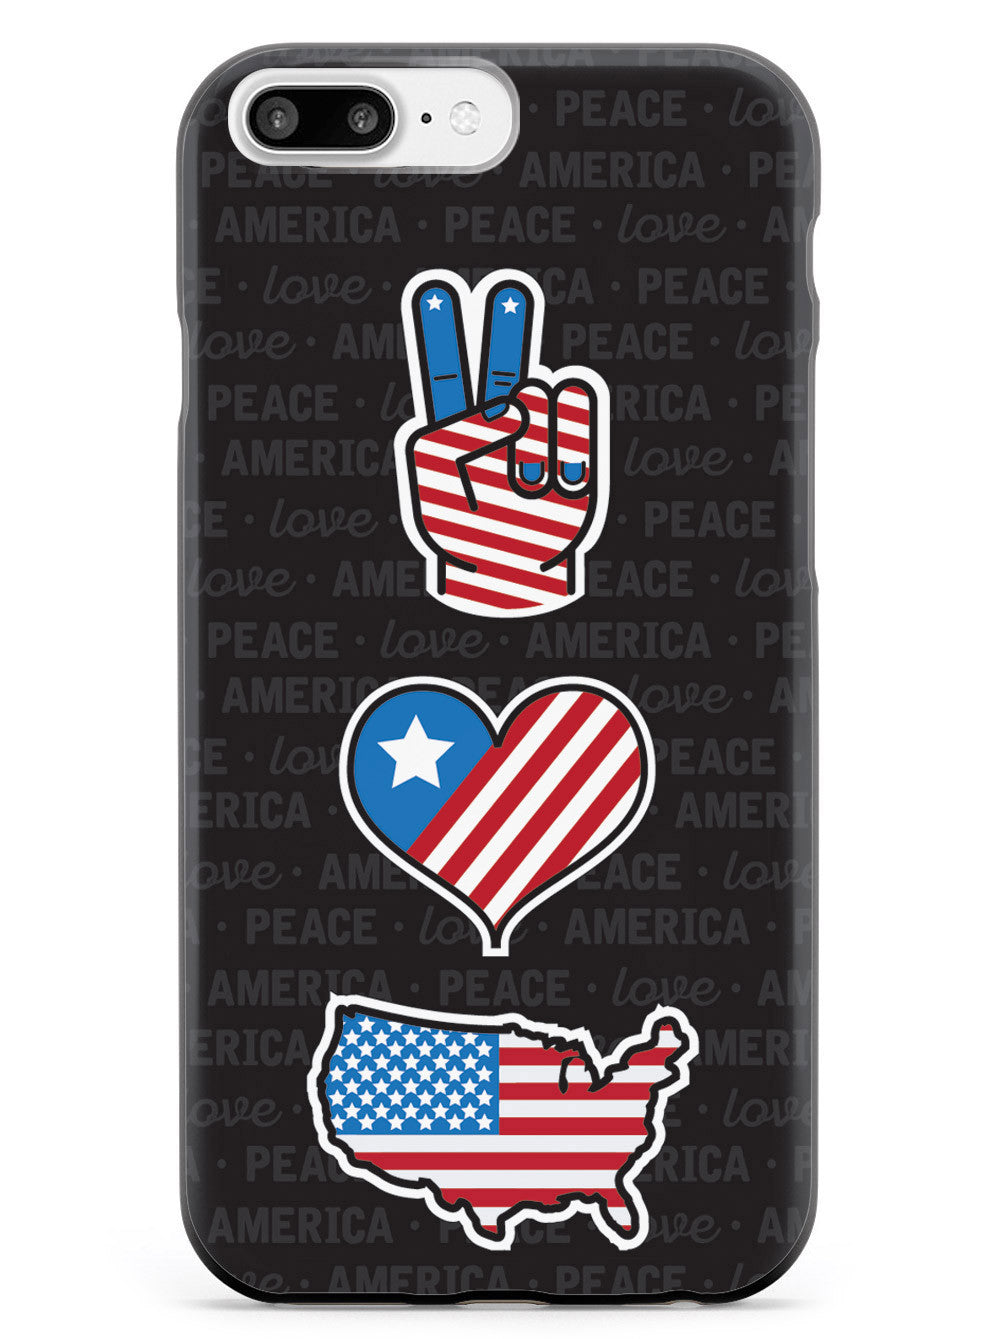 Peace, Love & America - Patriotic Case